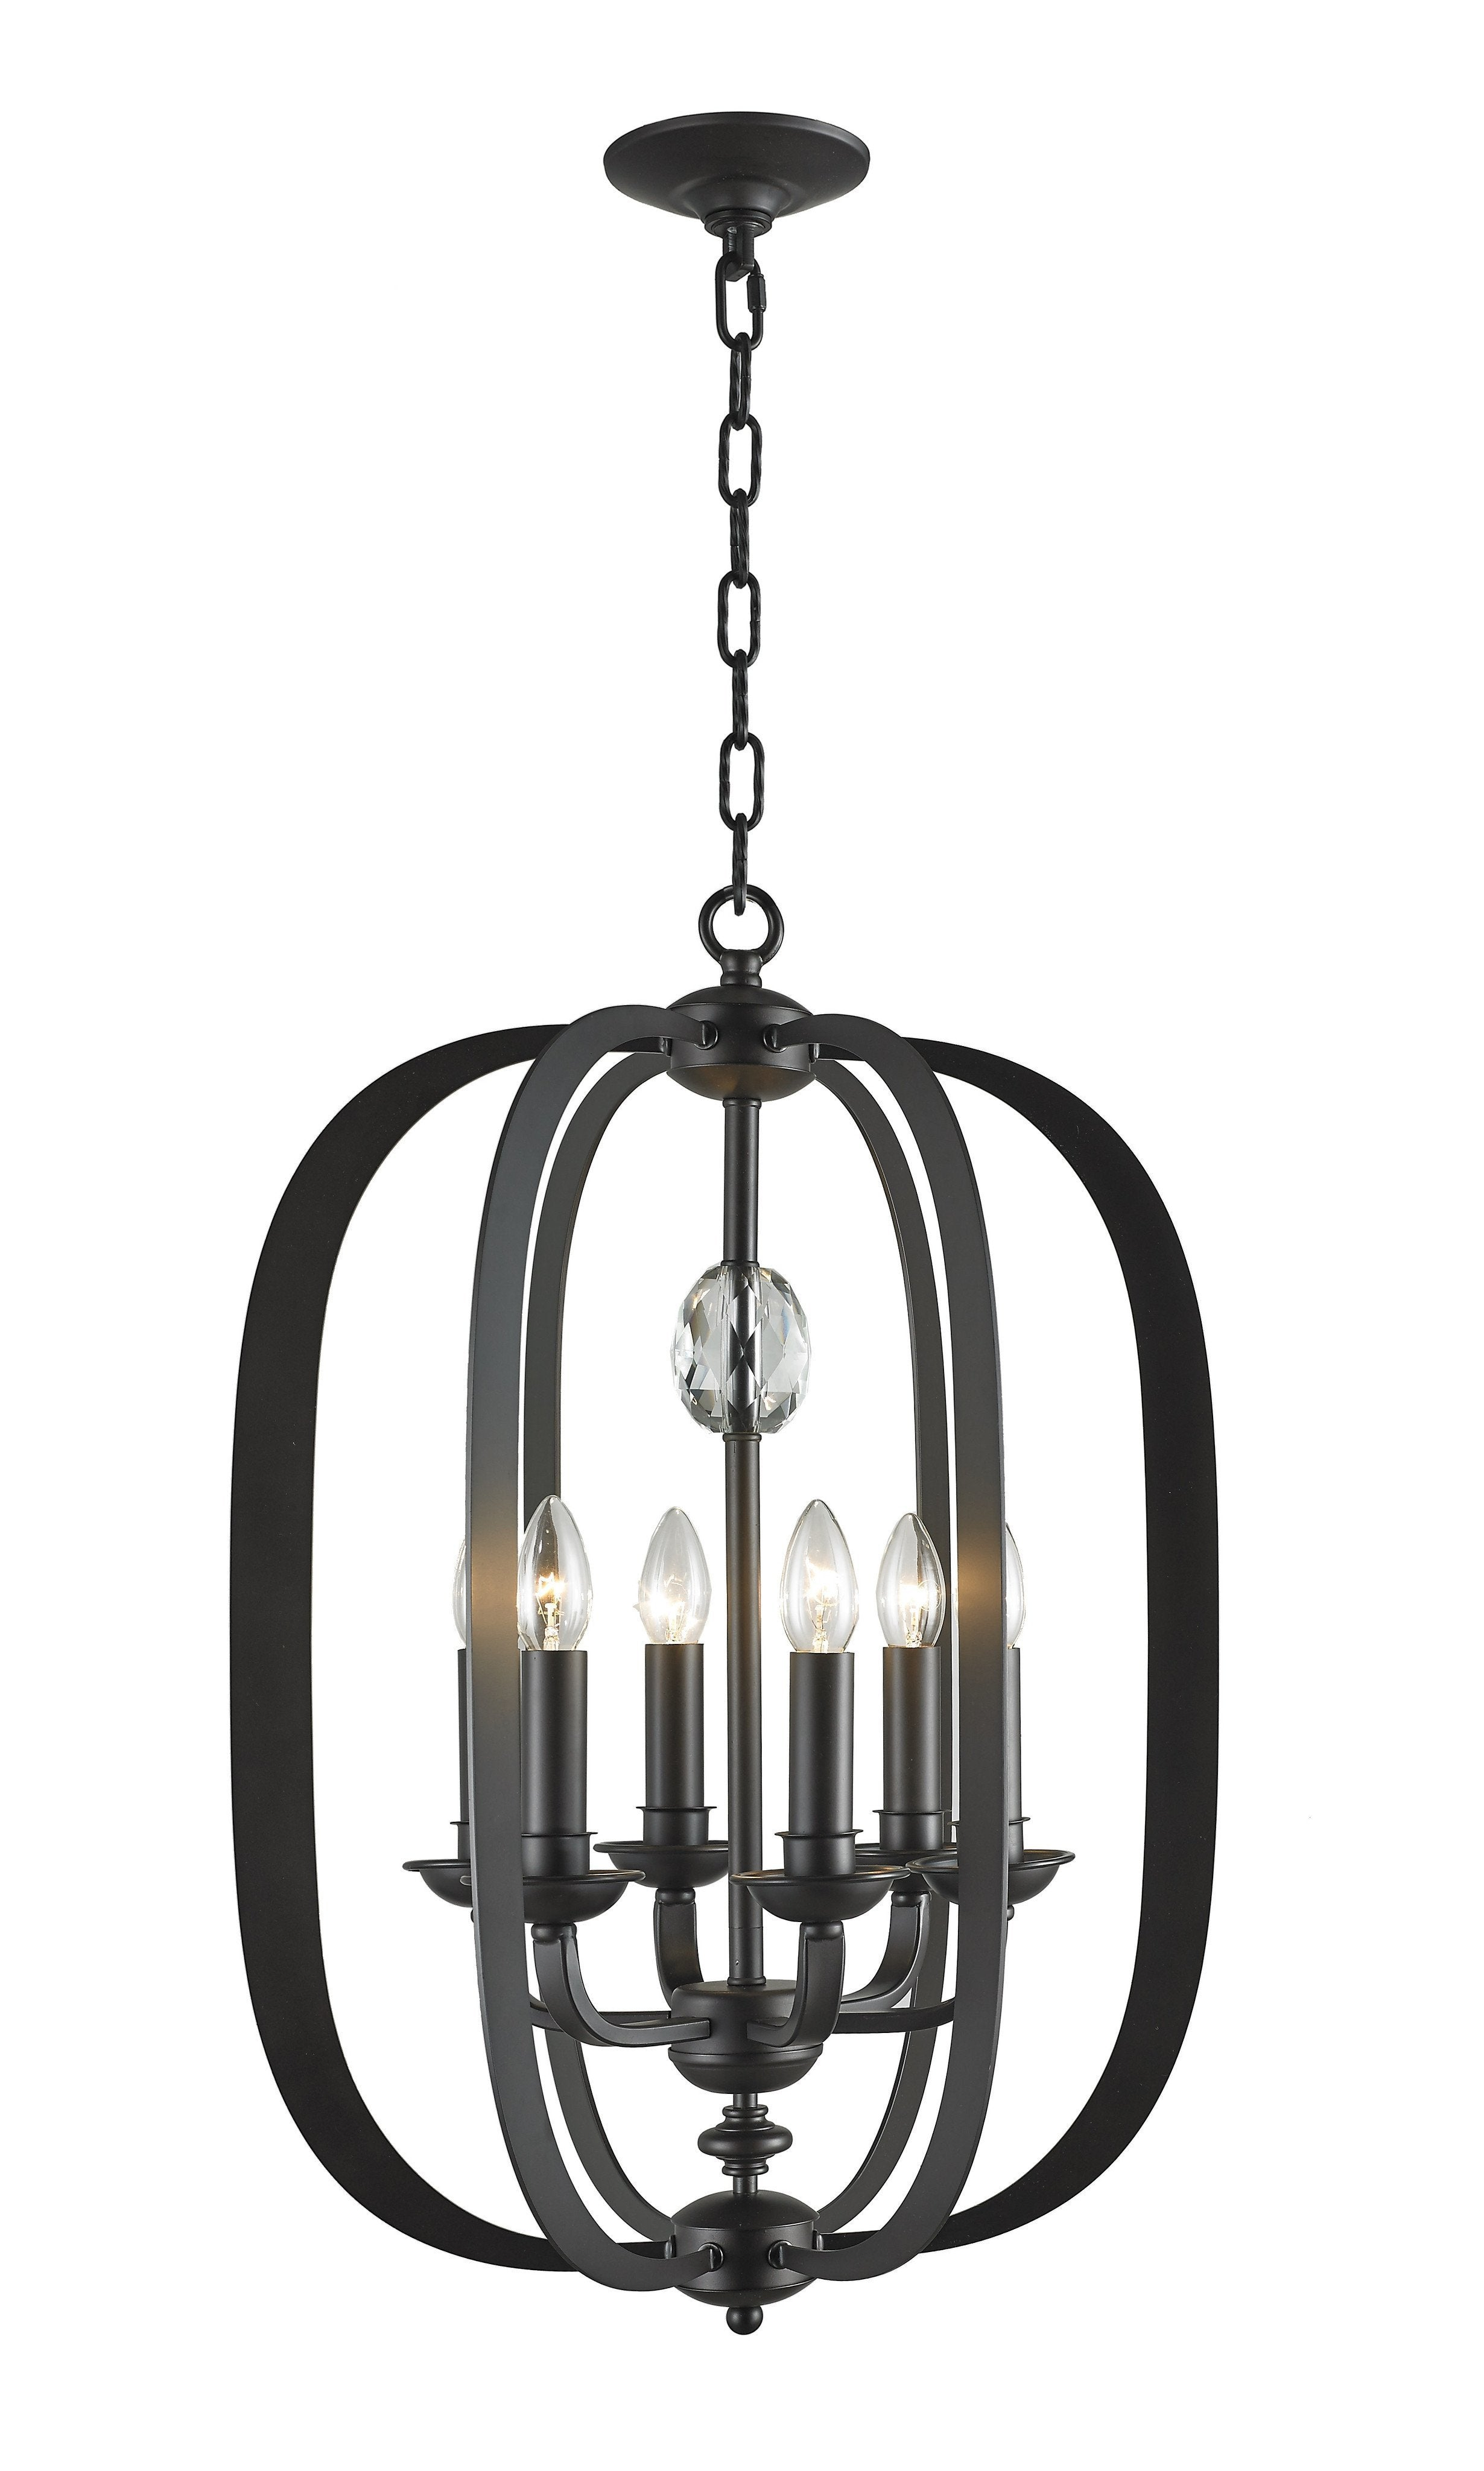 gold lighting dbg shop by jenni chandeliers dark world for and light chandelier from crystal trans olde on bronze pinterest jacobs pin with globe the